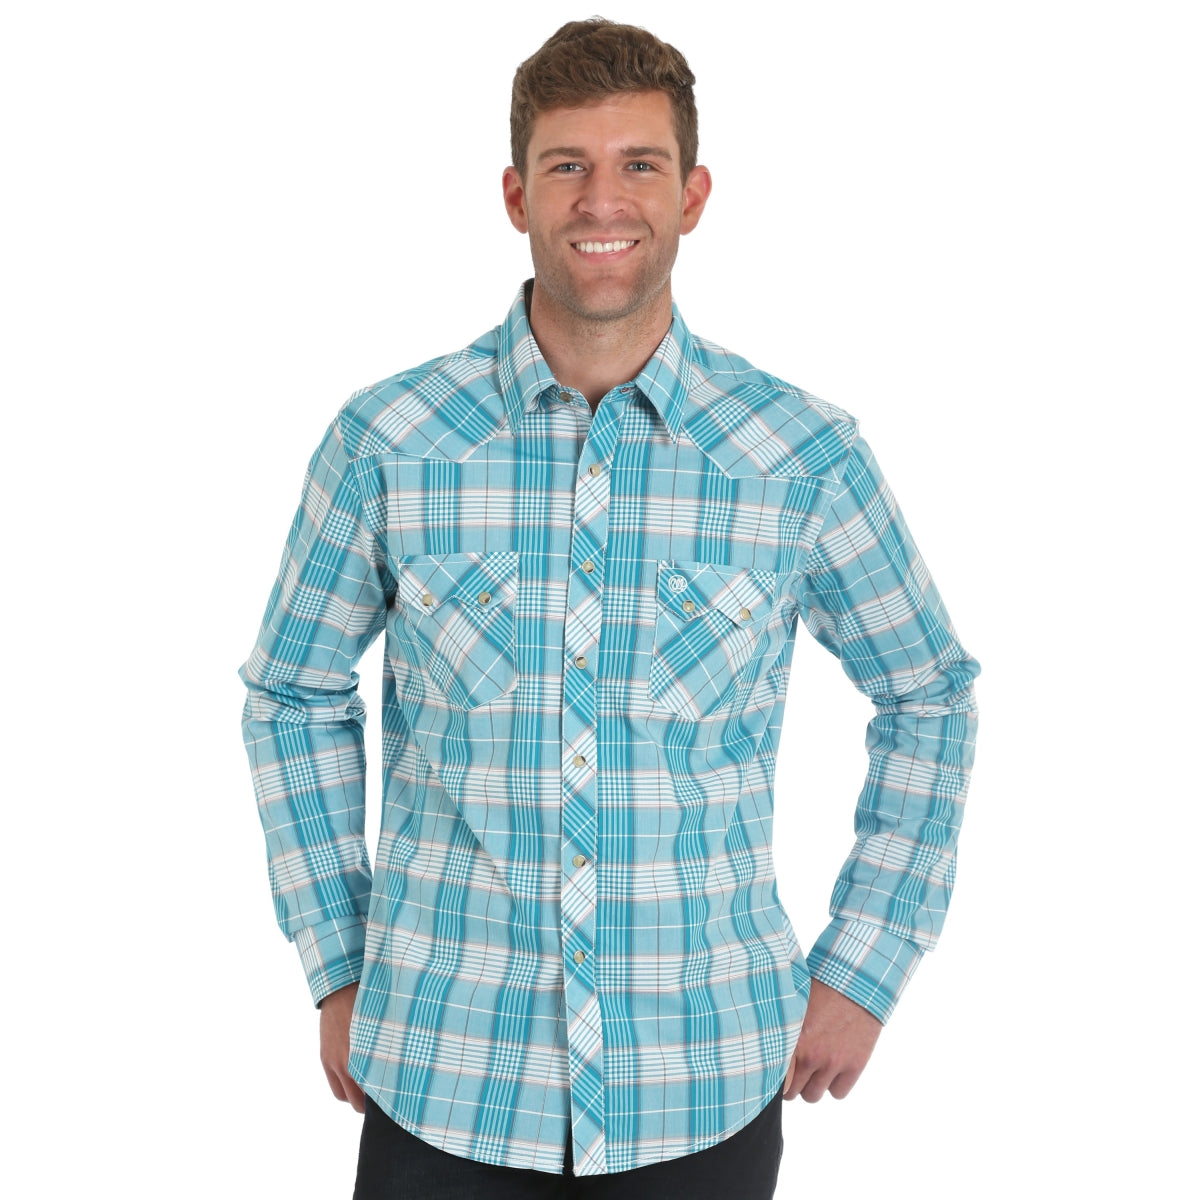 c3855cfa Wrangler Men's Retro Turquoise & Red Plaid Snap Up Western Shirt MVR380M  SALE. Wrangler ...